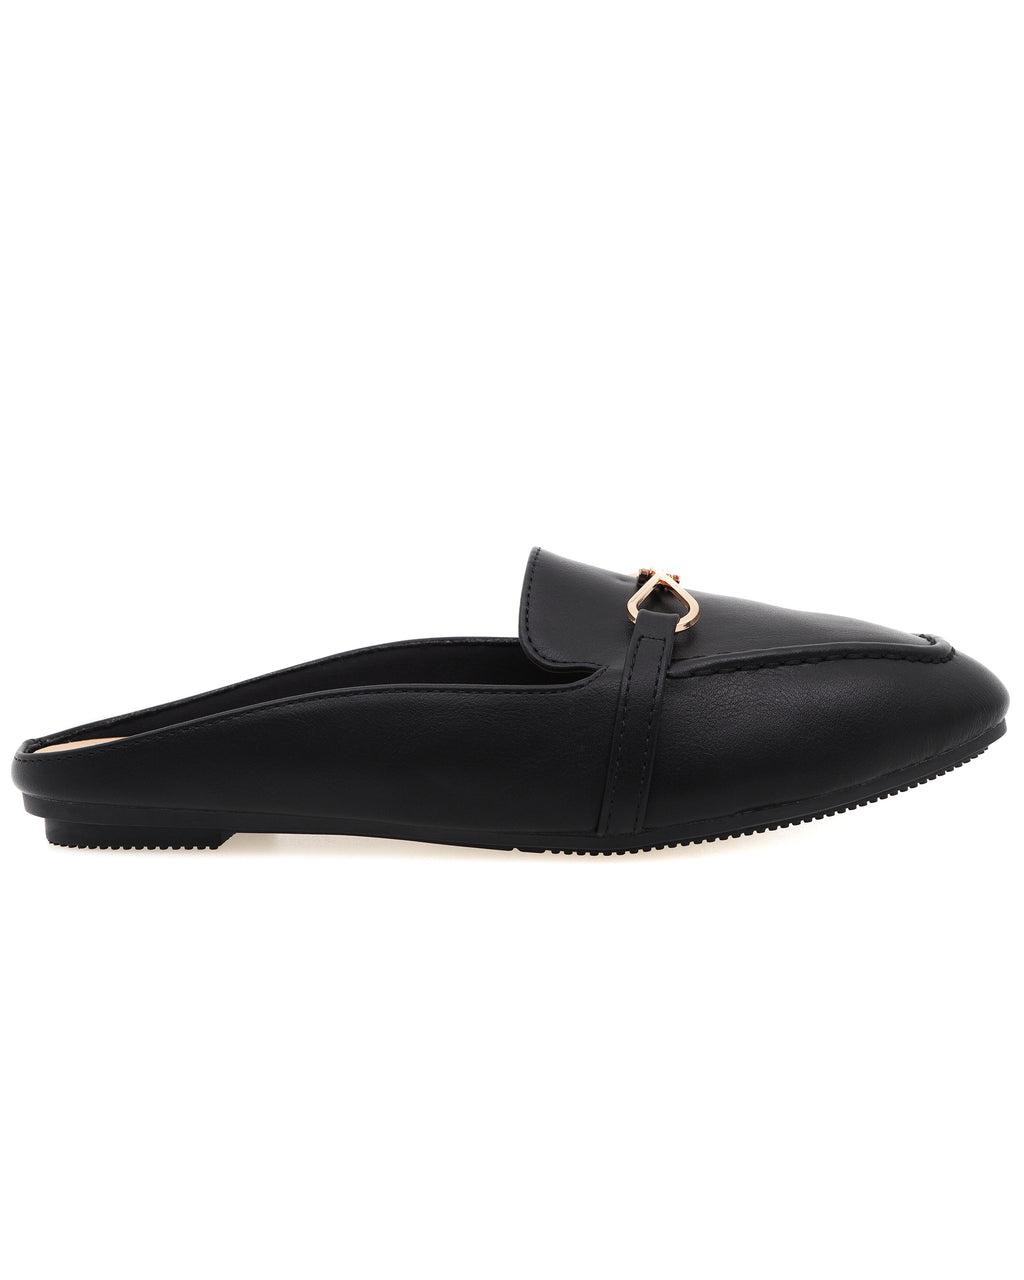 Tomaz XP102 Ladies Mule Slip Ons (Black)